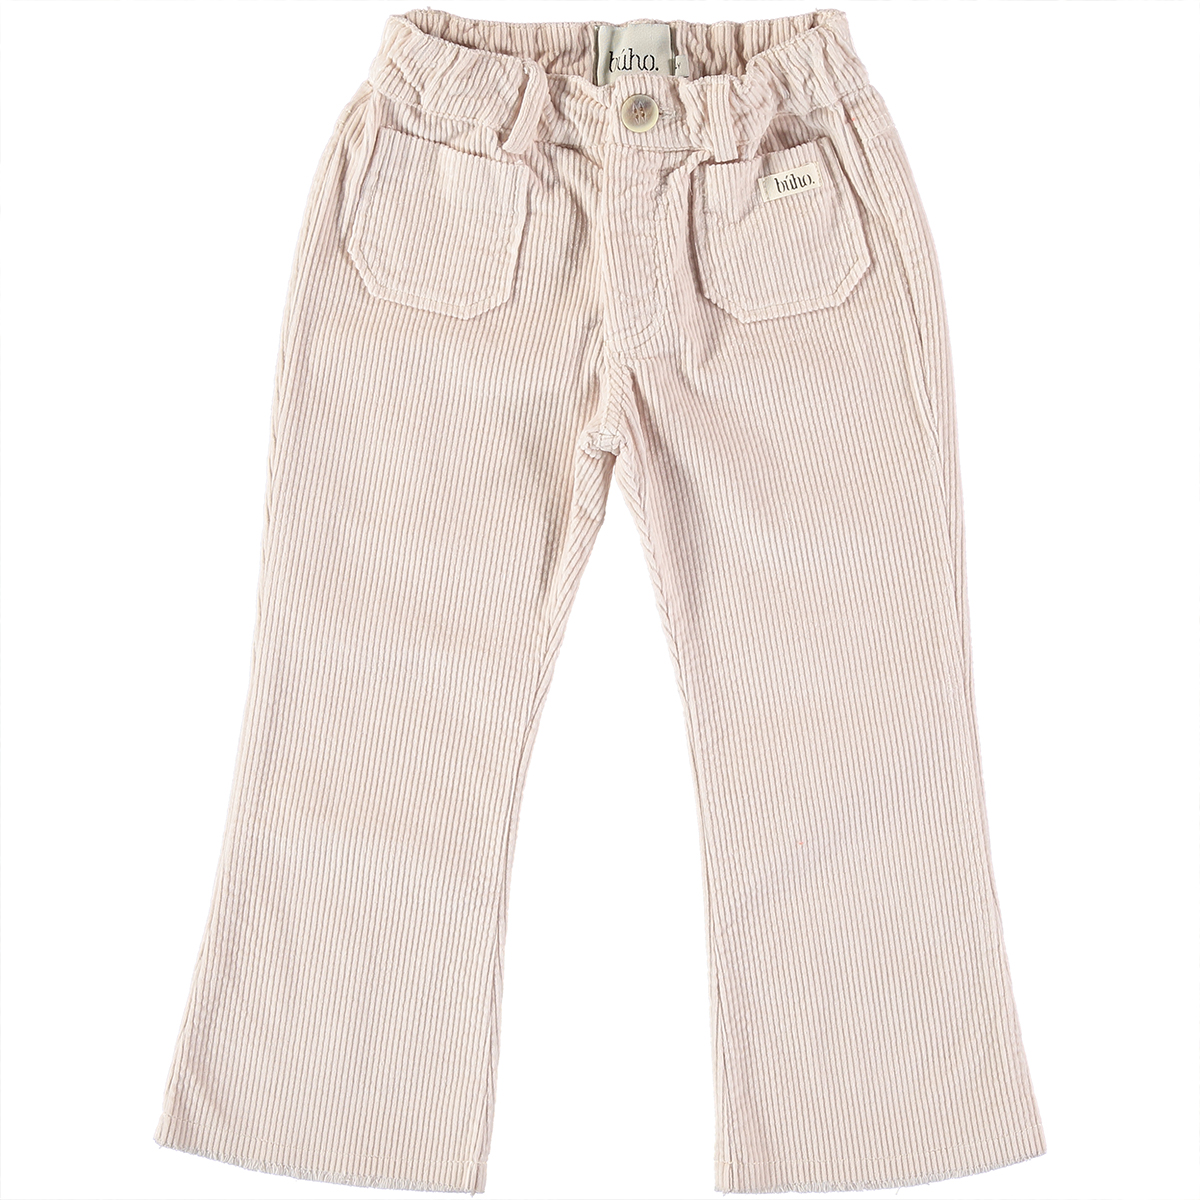 Buho Lila Corduroy Pant in Dust Rose